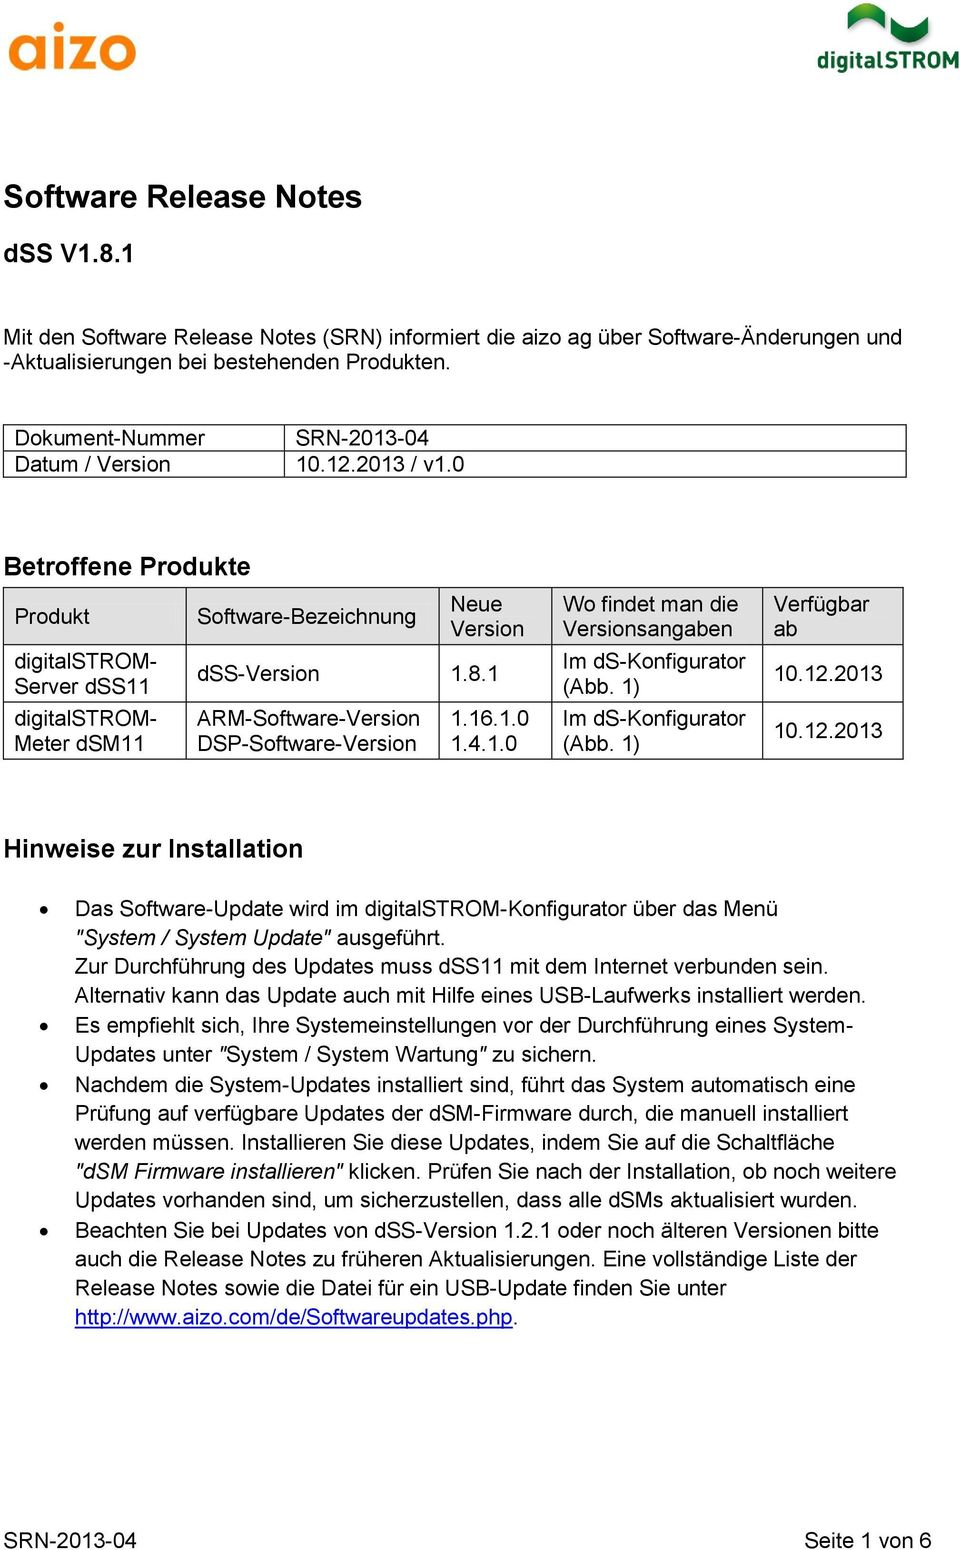 1 ARM-Software-Version DSP-Software-Version 1.16.1.0 1.4.1.0 Wo findet man die Versionsangaben Im ds-konfigurator (Abb. 1) Im ds-konfigurator (Abb. 1) Verfügbar ab 10.12.